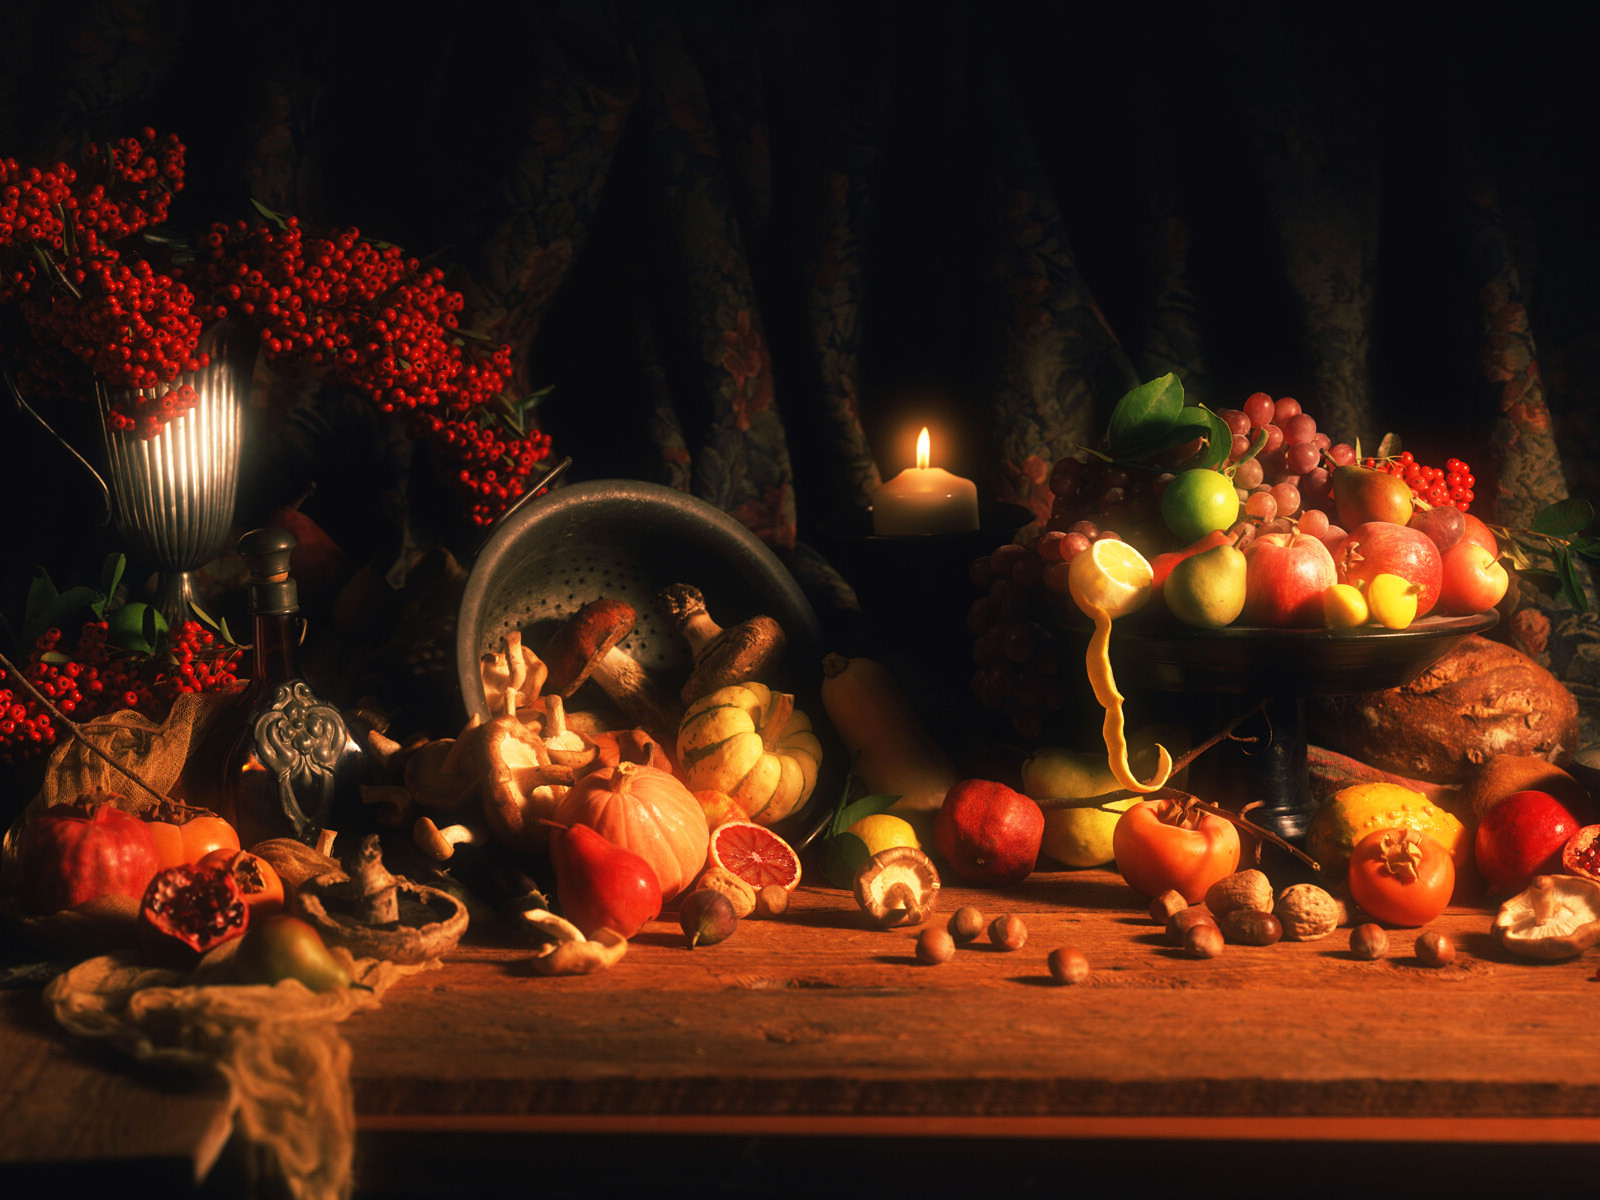 Thanksgiving Live Wallpaper  Android Apps on Google Play 1600x1200